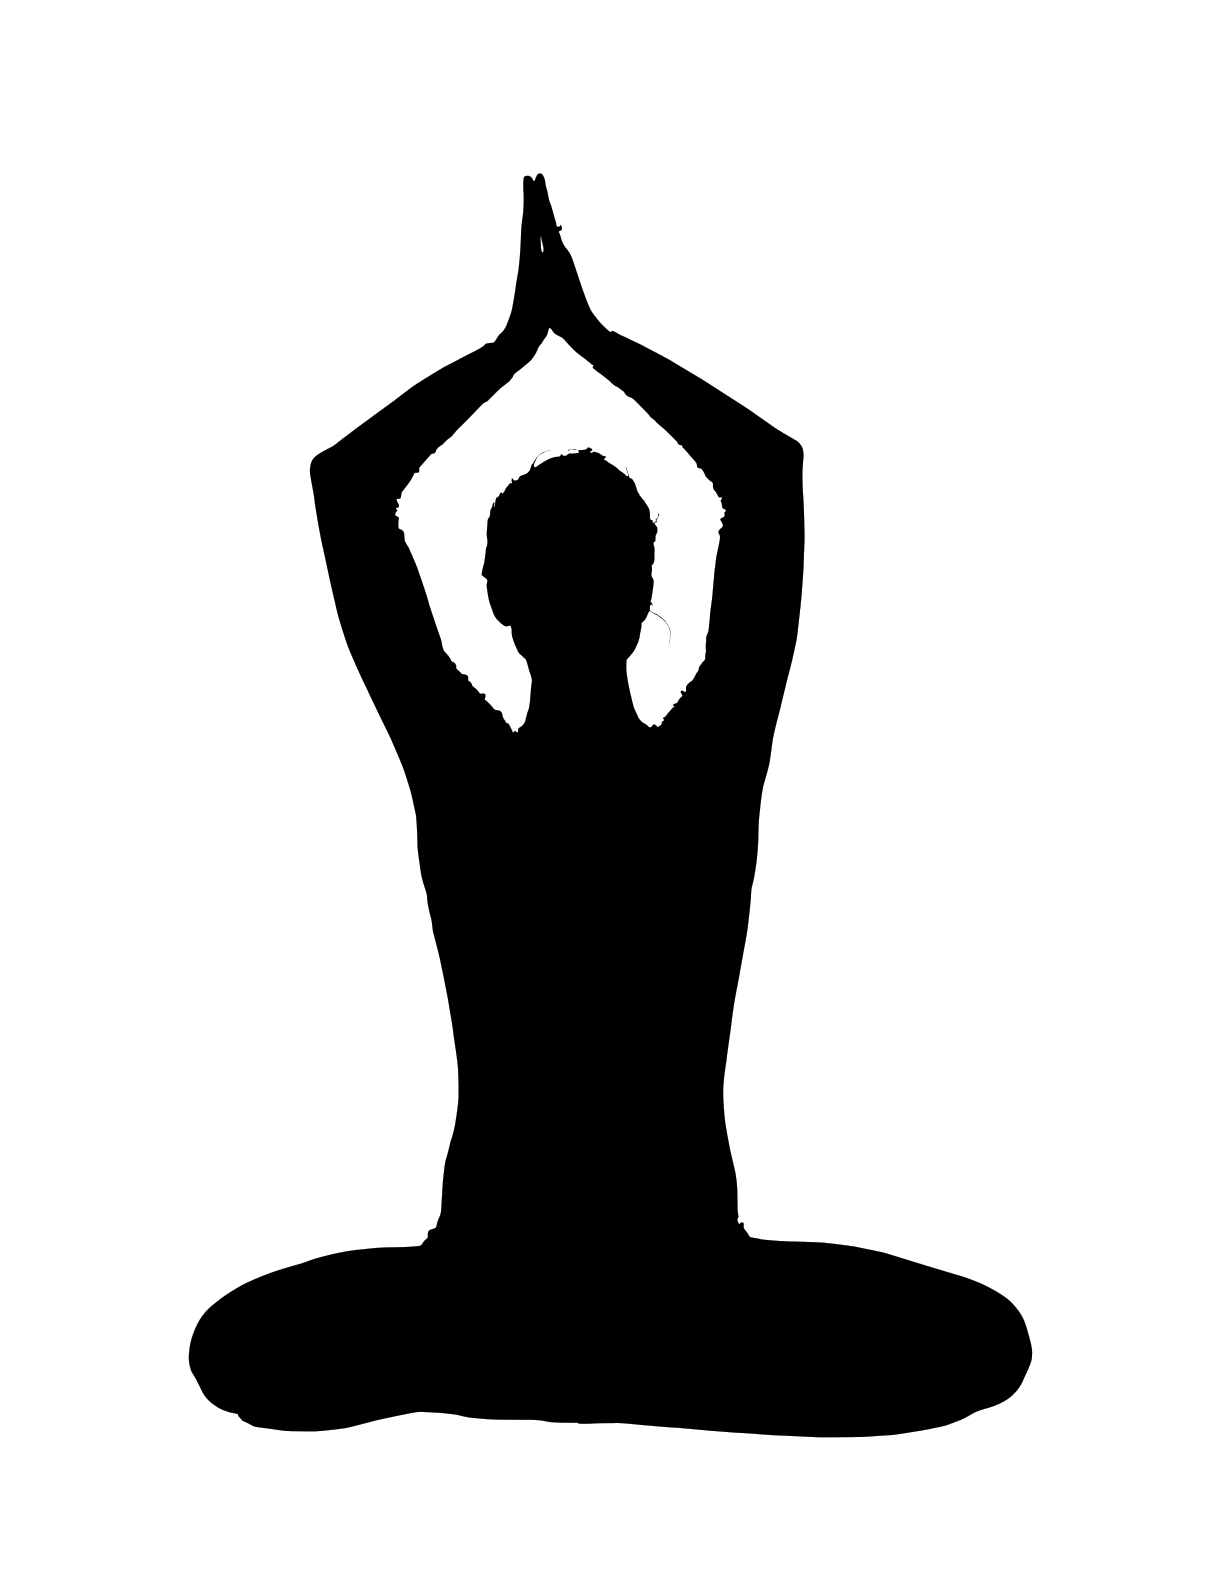 File:Silhouette yoga.png - Free PNG Yoga